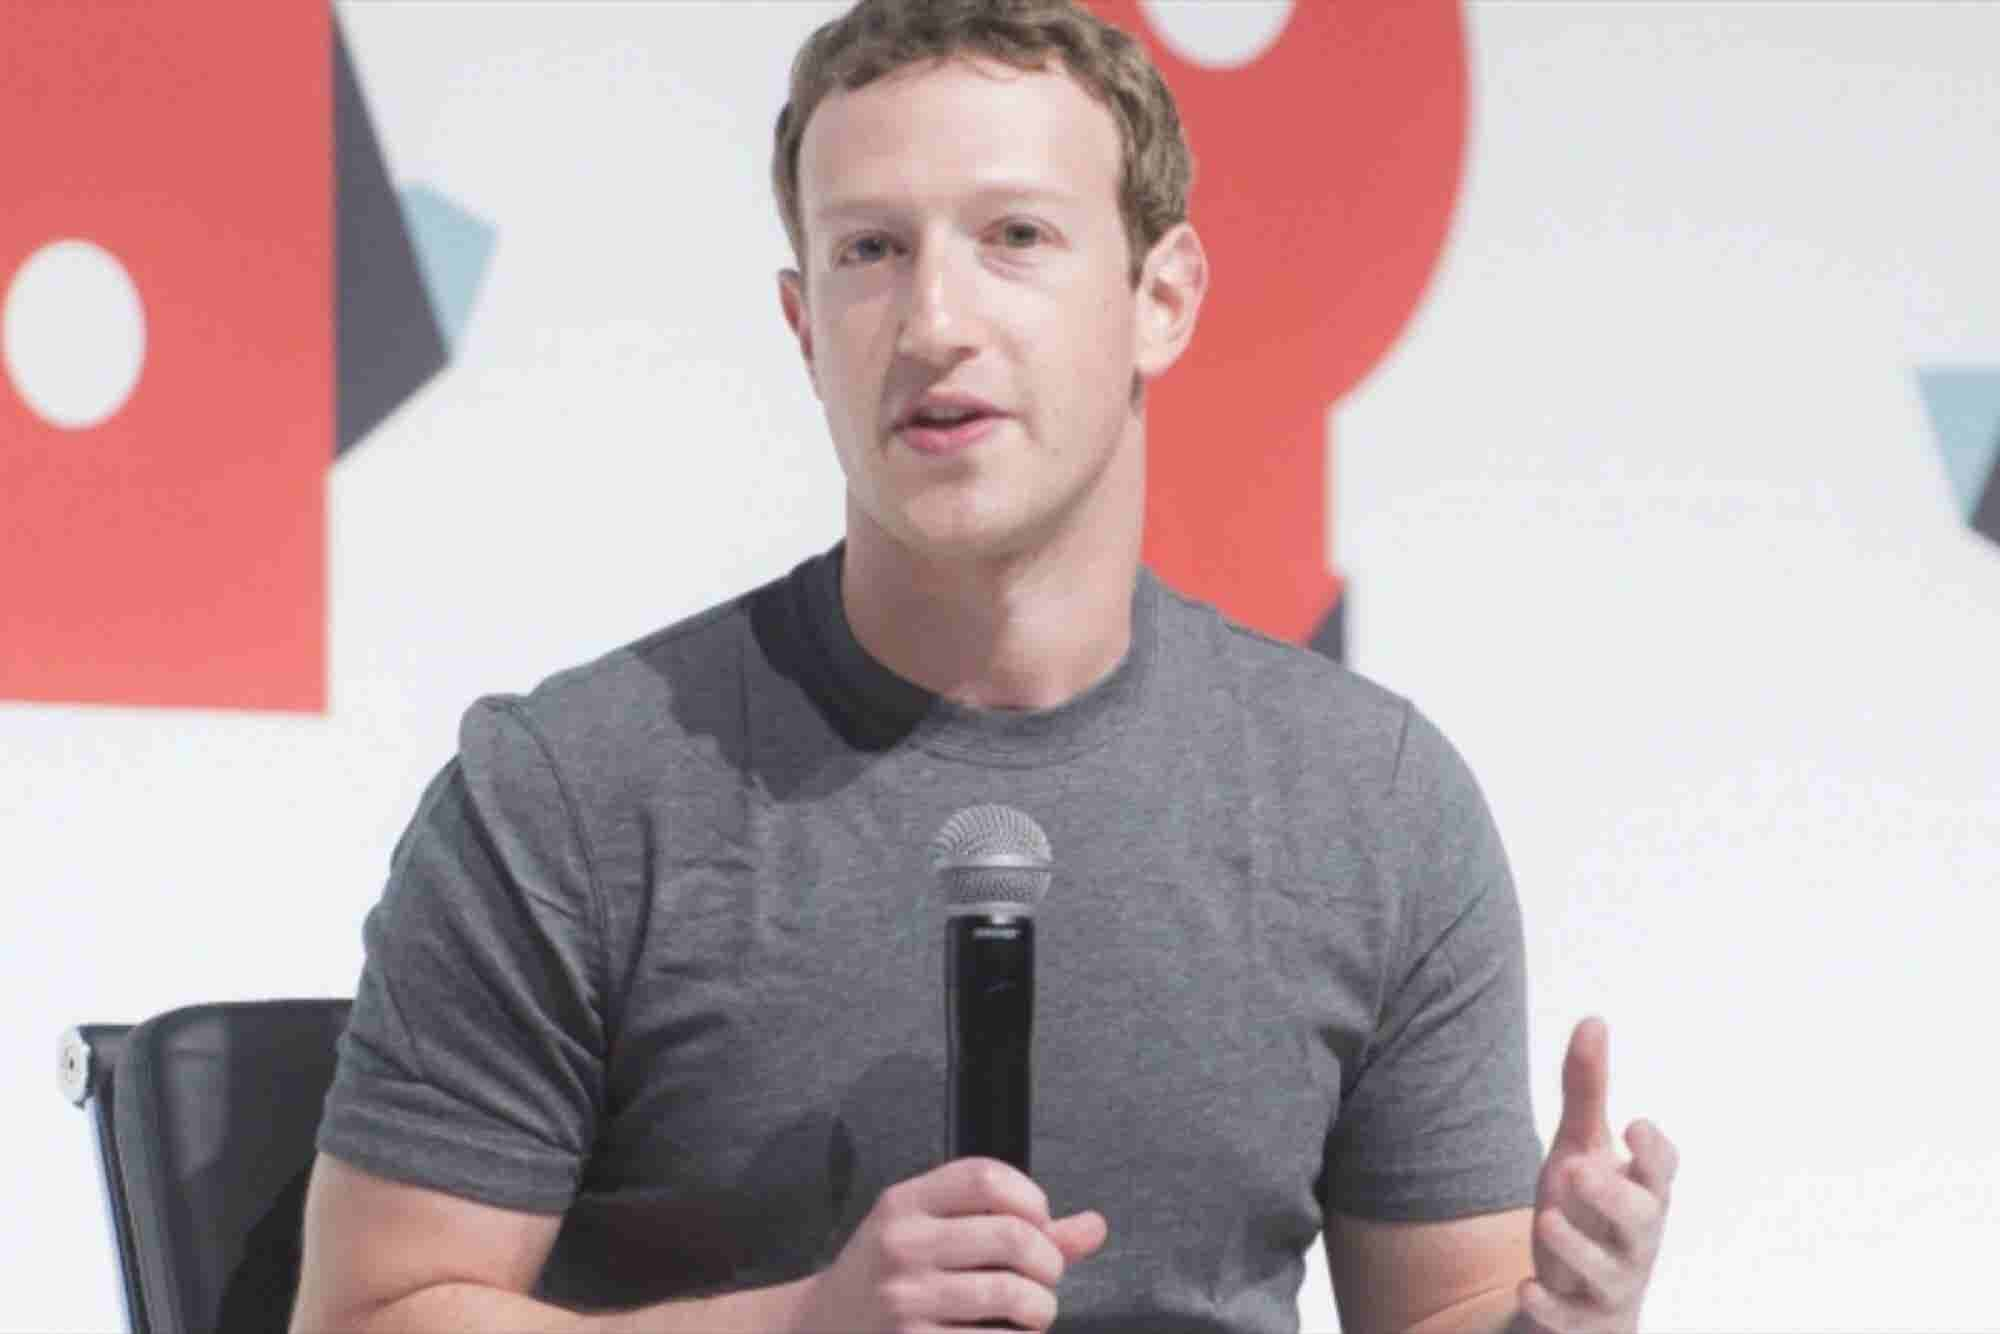 5 Things We Learned From This Mark Zuckerberg Interview